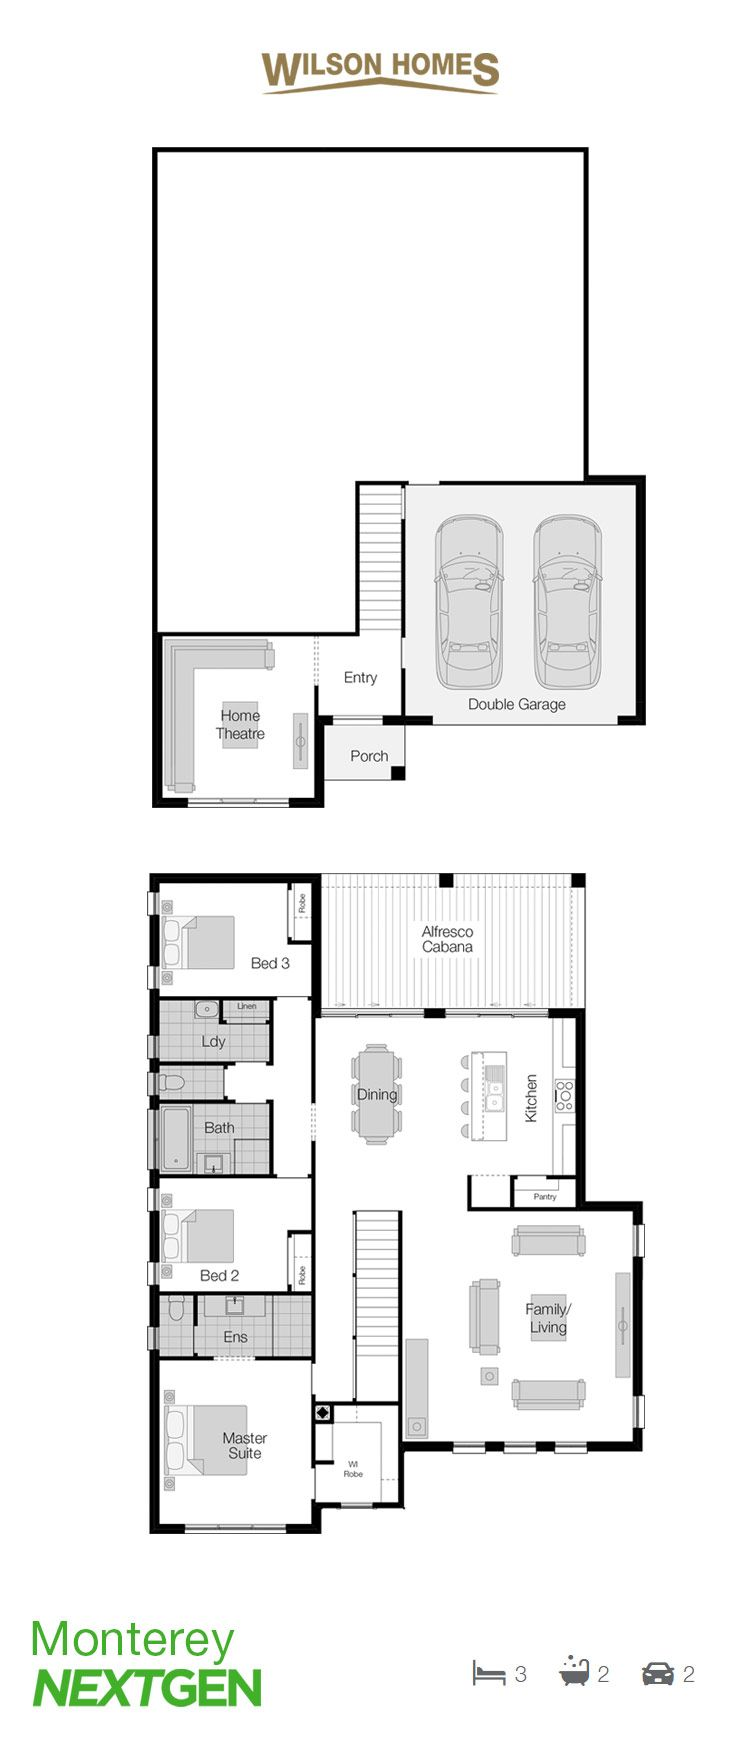 Monterey Floor Plan by Wilson Homes - NextGen Portfolio - Featuring a split-level design that offers rich views of the surrounds, this home is a sophisticated solution to building on a sloping block. Visit http://www.wilsonhomes.com.au/home-design/monterey to learn more. #splitlevelhome #wilsonhomes